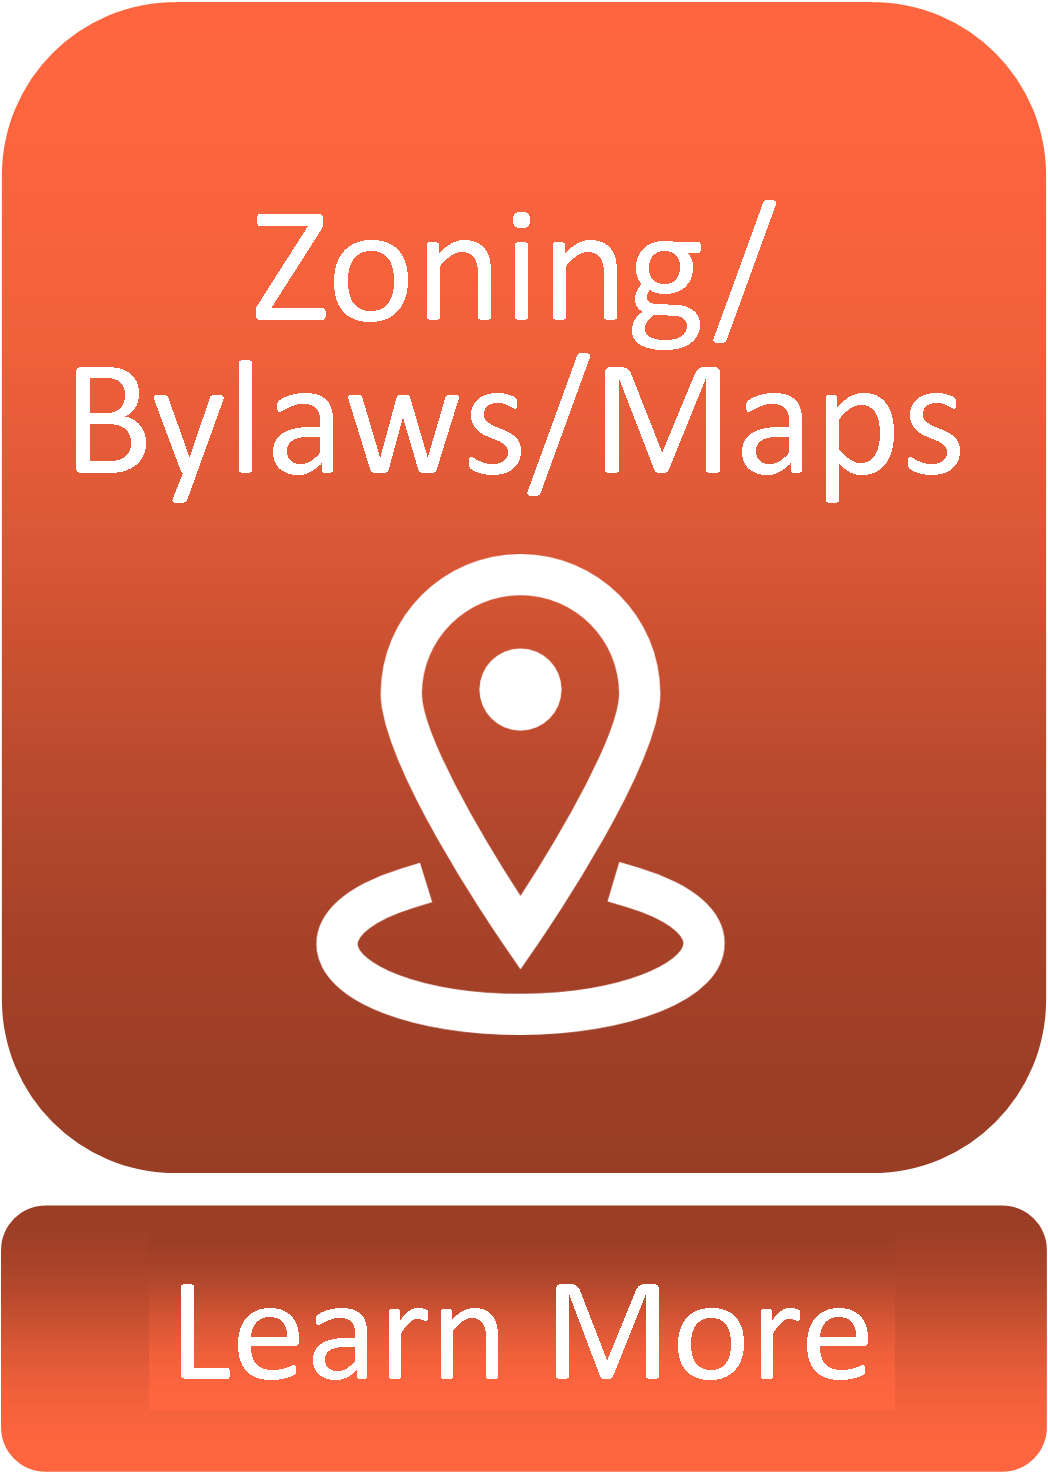 zoning /bylaws